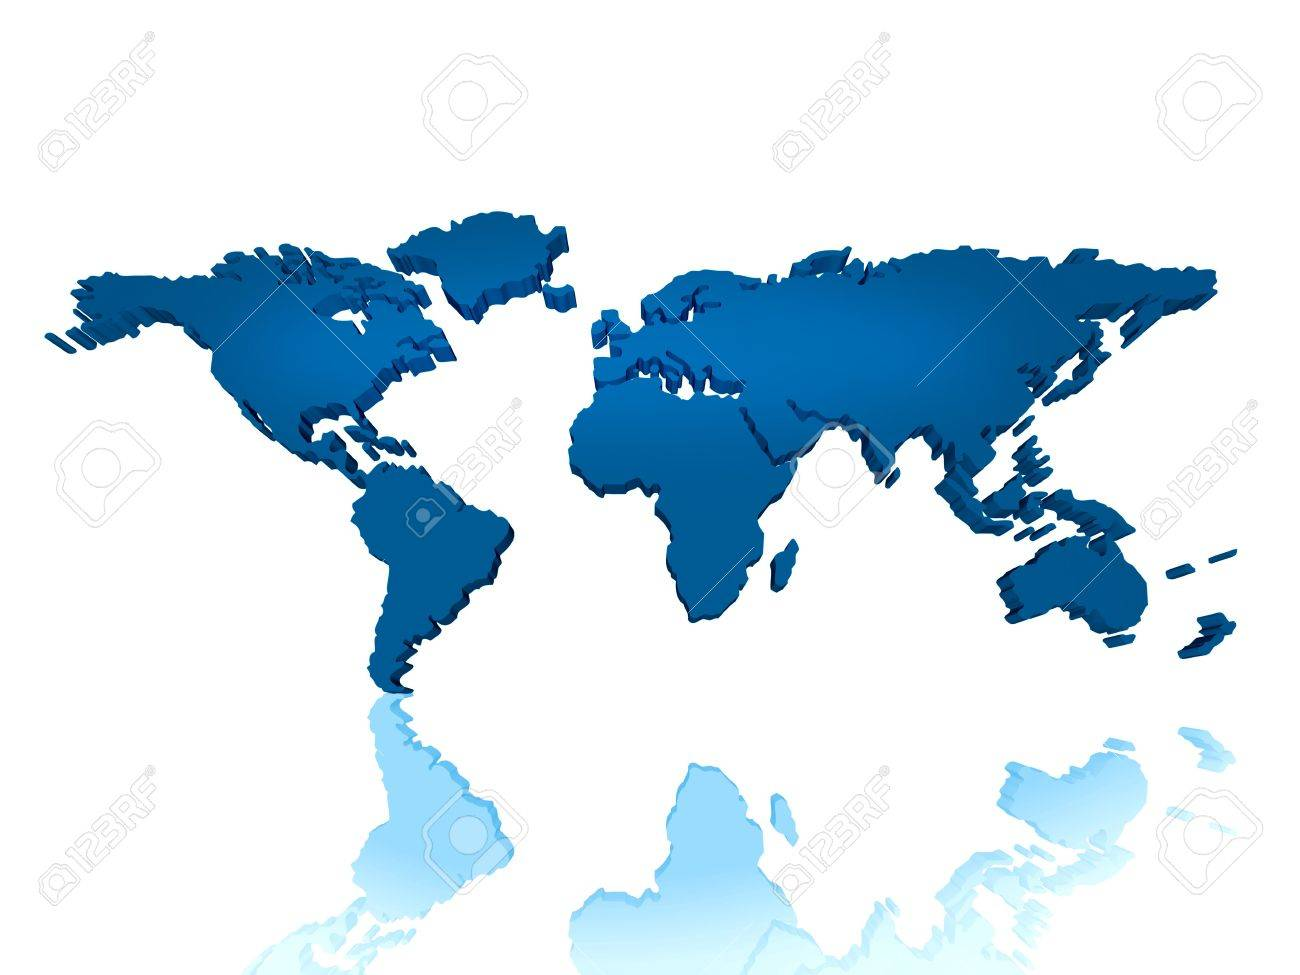 This Is A Continental Regional 3d World Map Can Be Used For Stock